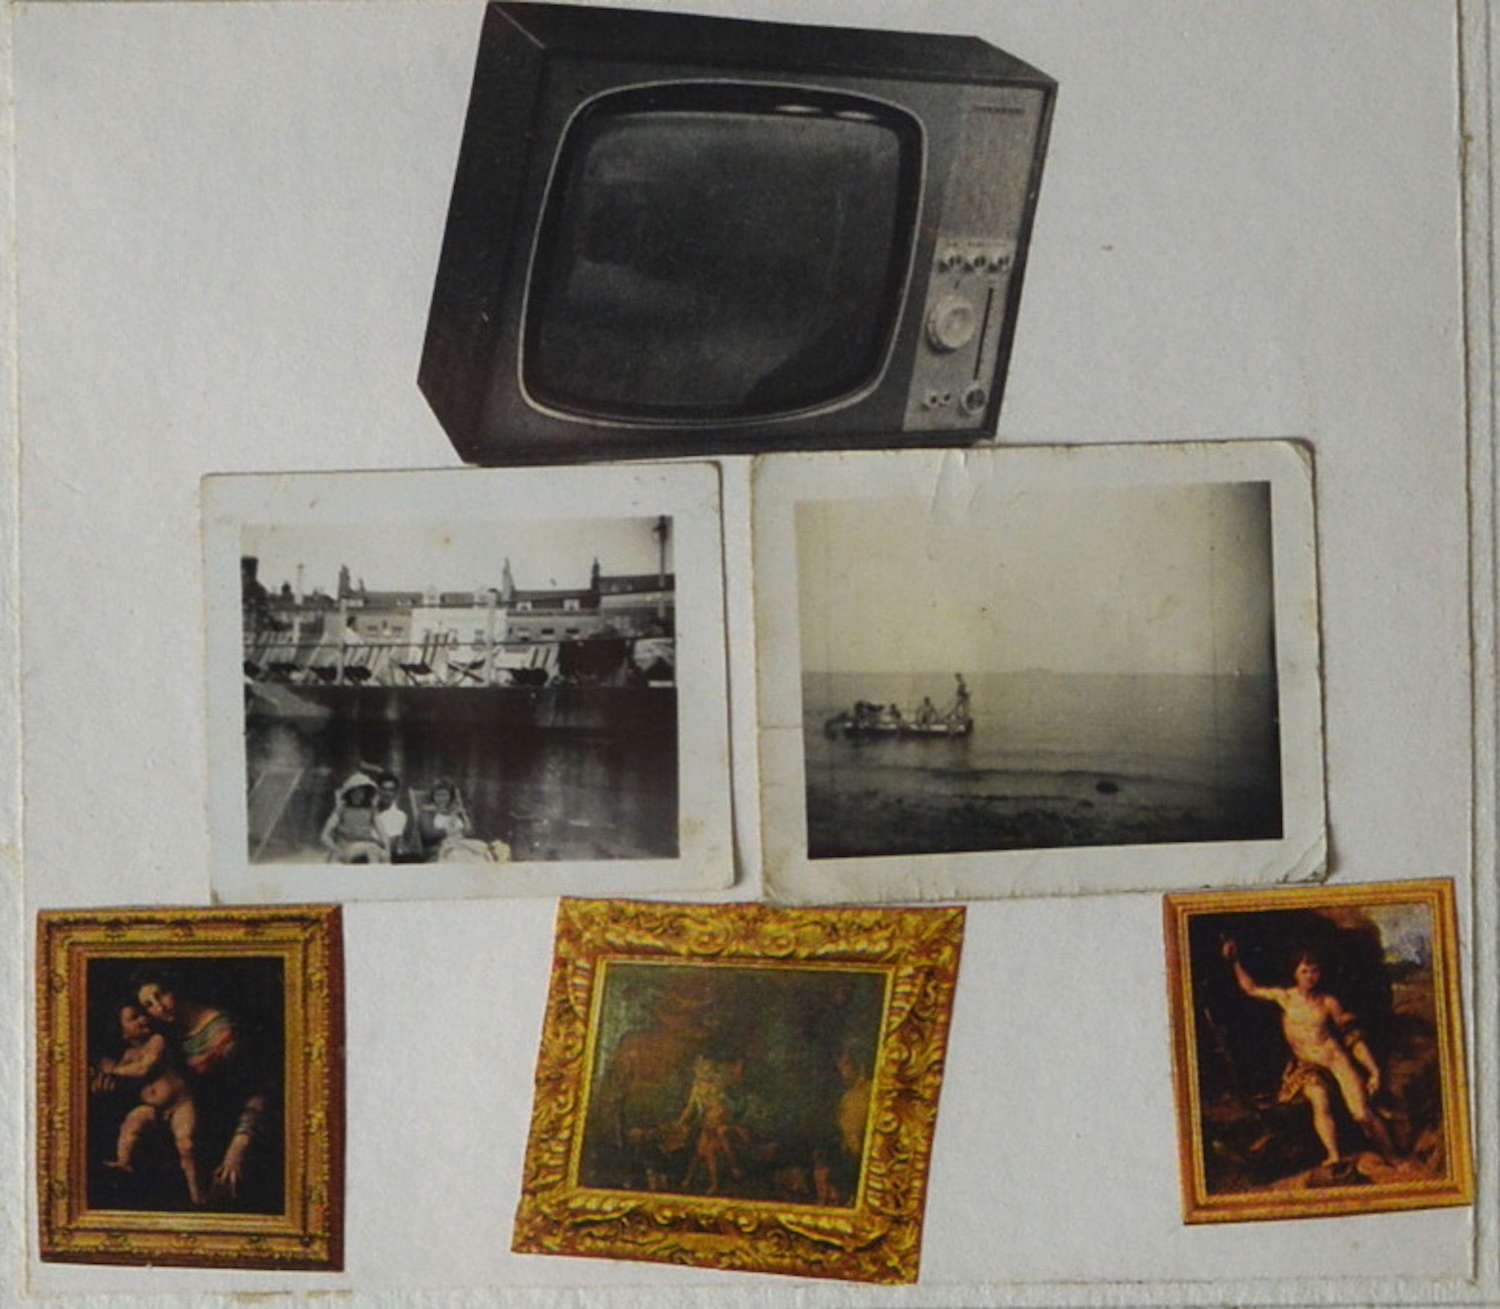 MIXED MEDIA STUDY BY ANDREW LANYON